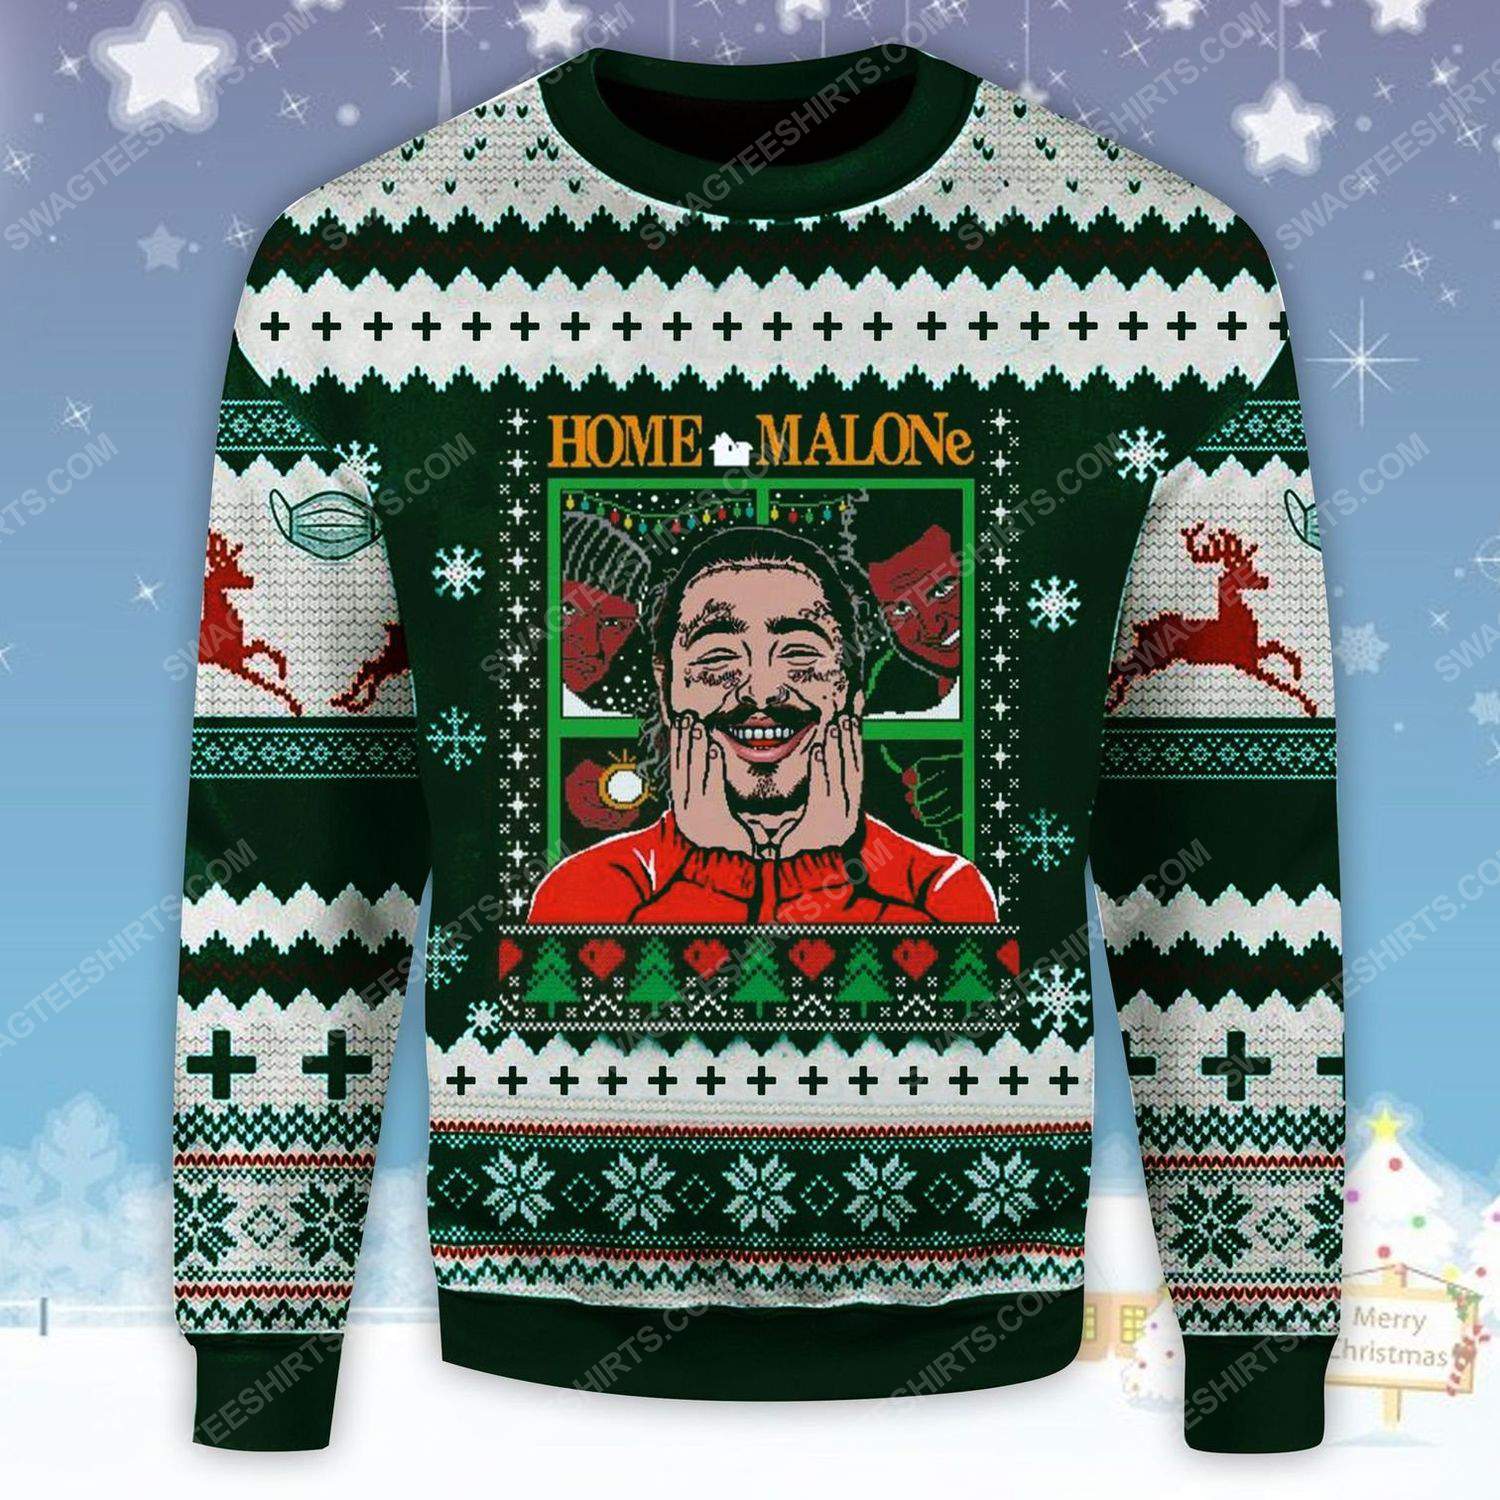 Home alone post malone ugly christmas sweater - Copy (3)